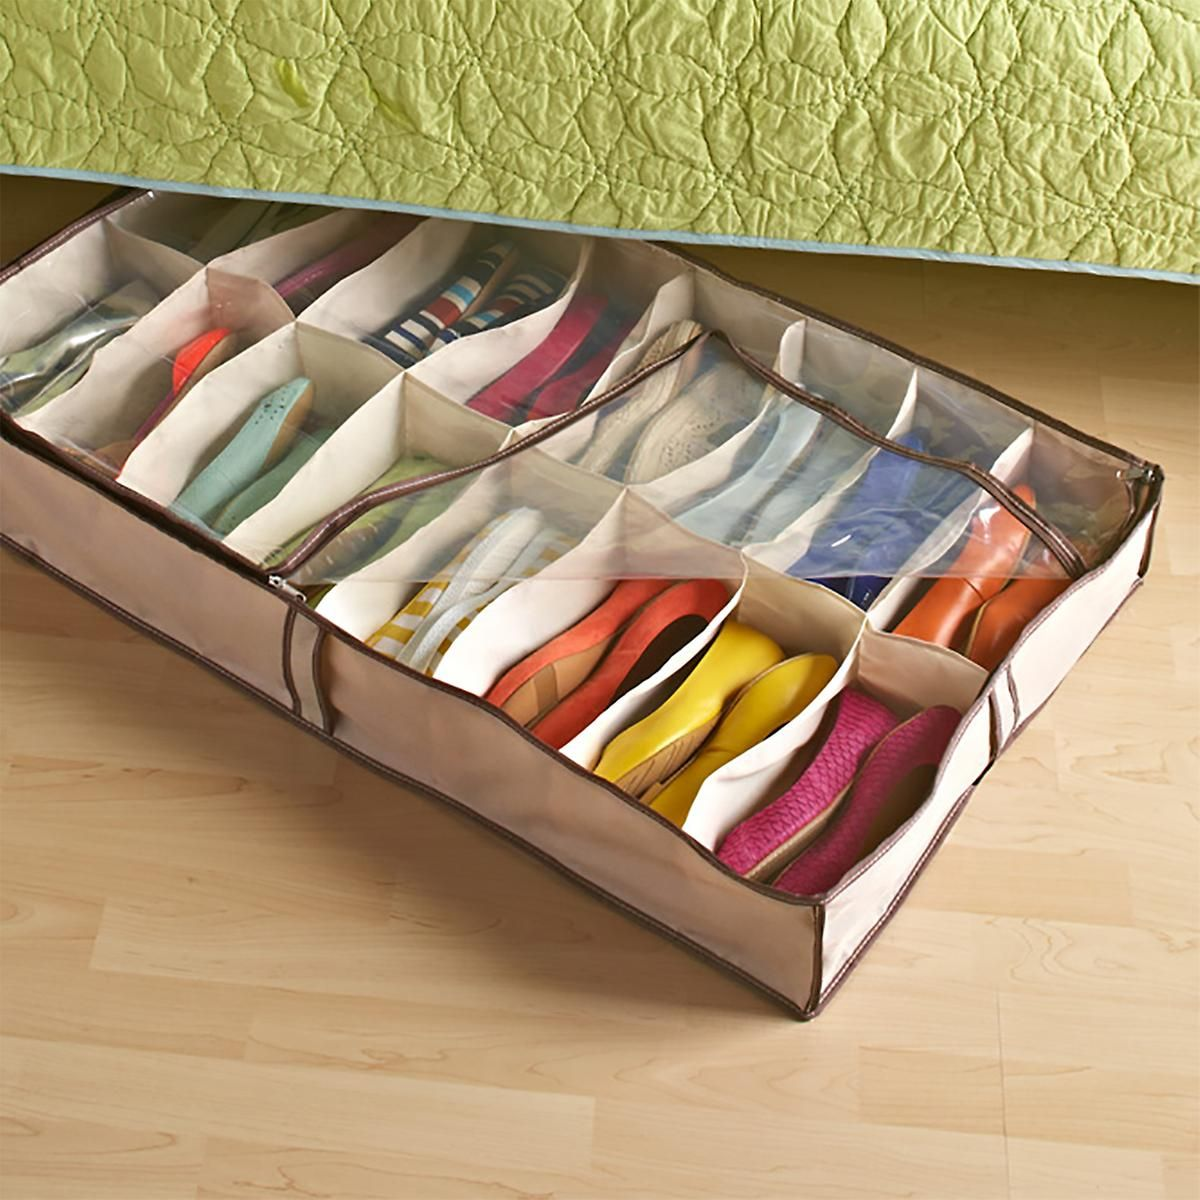 Under Bed Shoe Storage With Wheels Endearing Tweed 16Pair Under Bed Shoe Organizer  Shoes Organizer Container Design Decoration